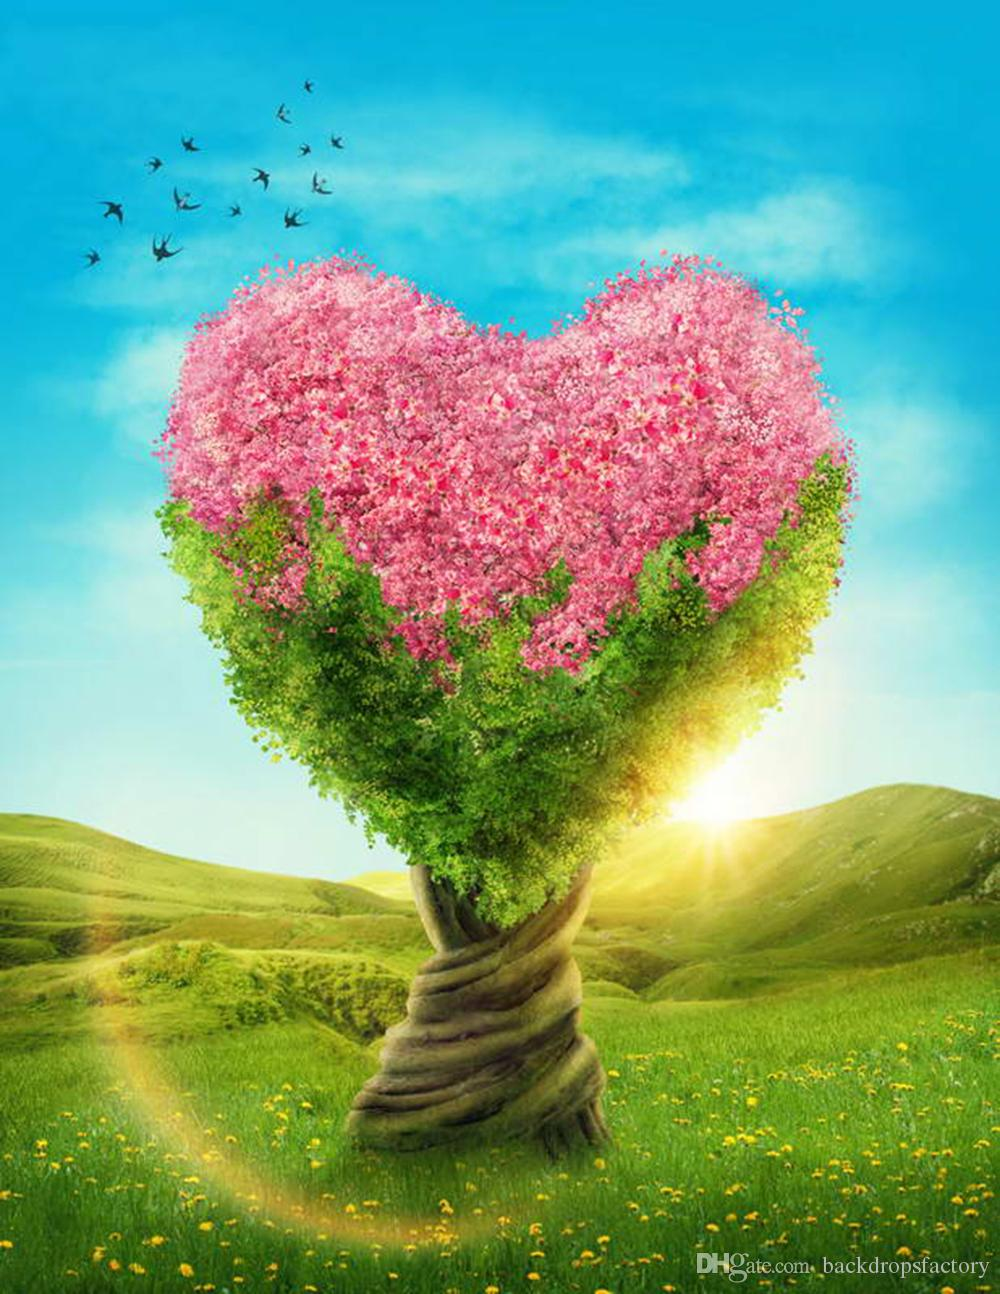 Beautiful scenery pictures flowers wallpapersimages 2017 heart shaped tree backdrops with pink flowers sunshine blue izmirmasajfo